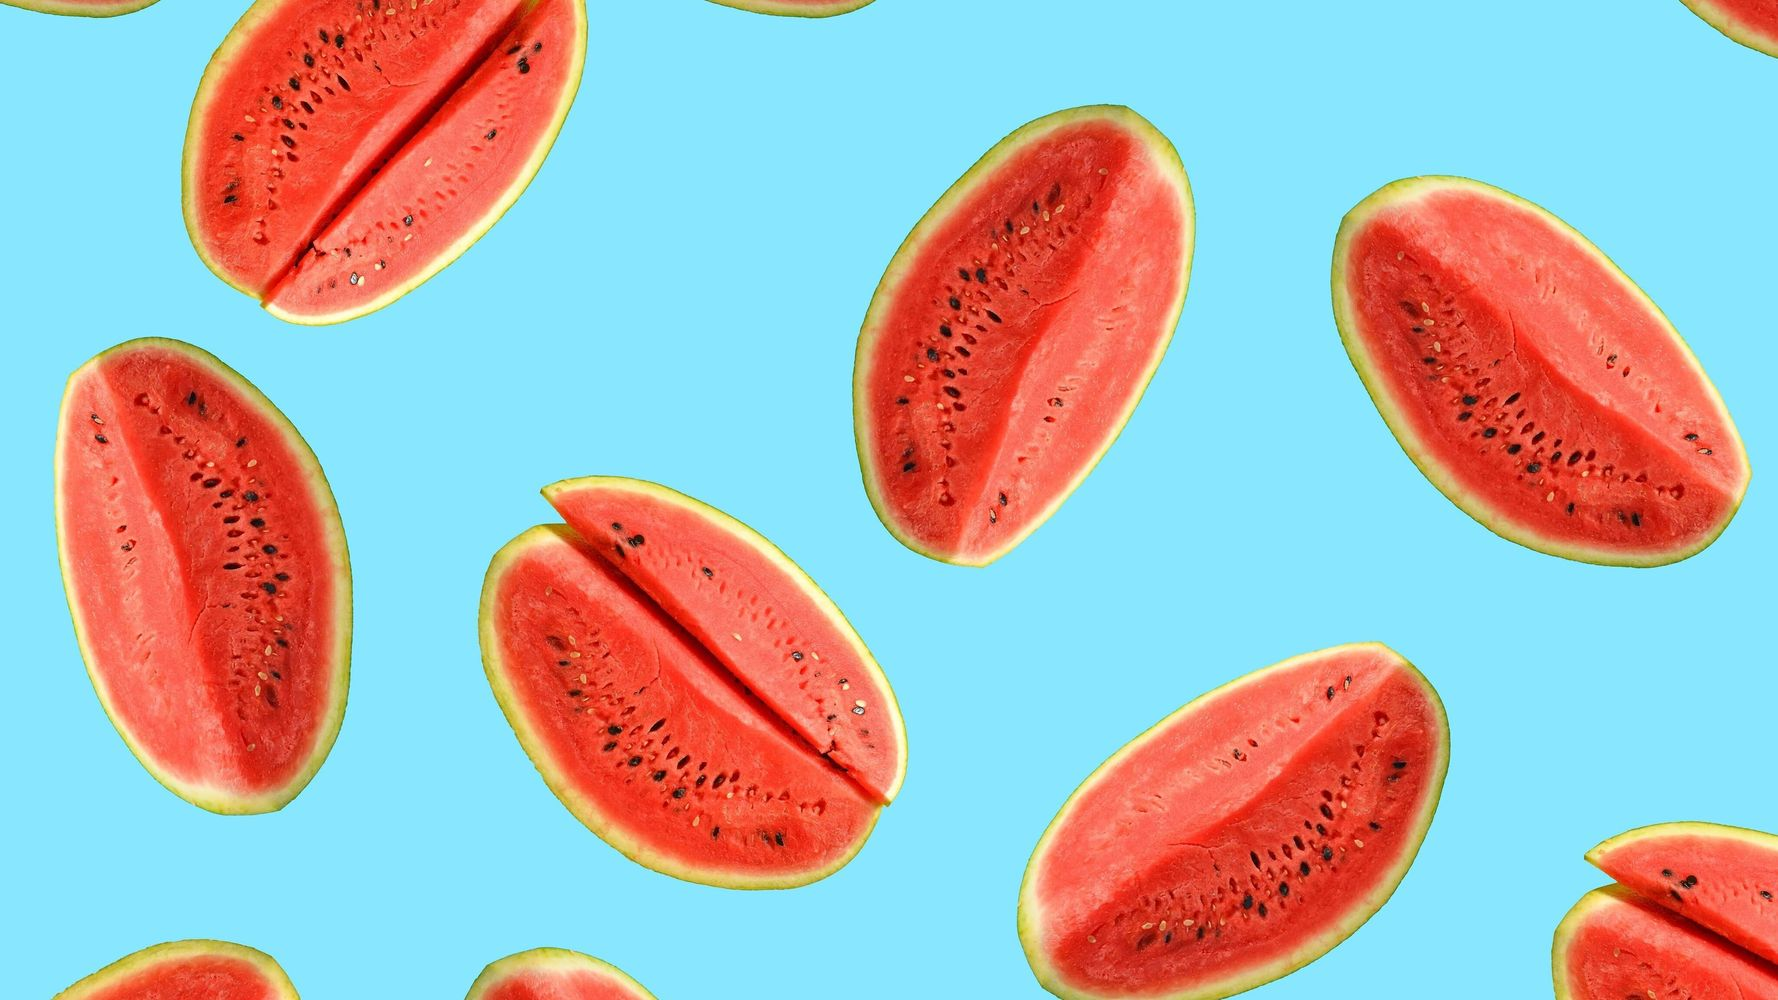 New York Times accidentally posted articles about watermelon on Mars